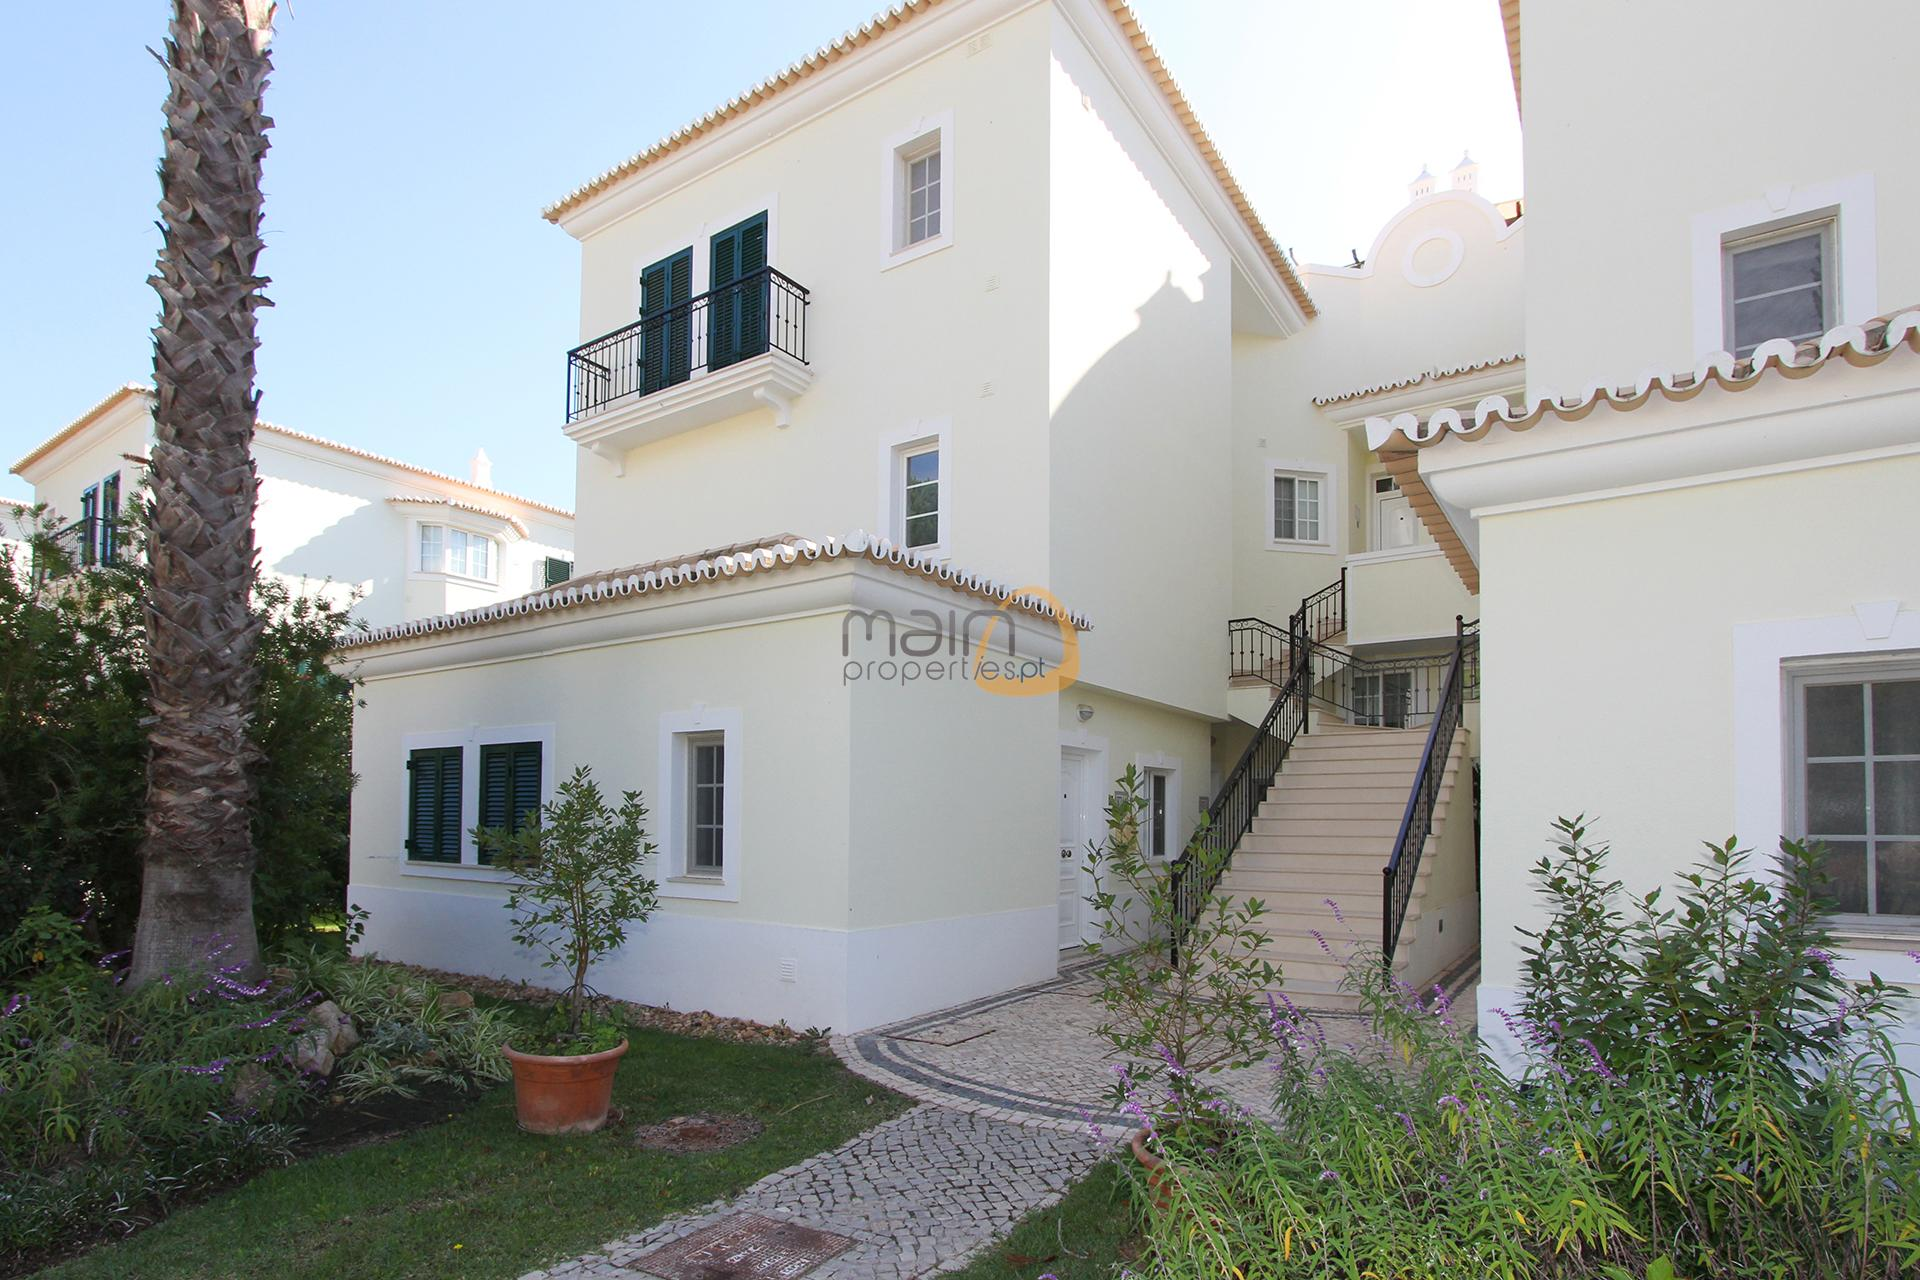 apartment-in-vale-do-lobo-algarve-golden-triangle-portugal-property-real-estate-mainproperties-mp132vdl-8